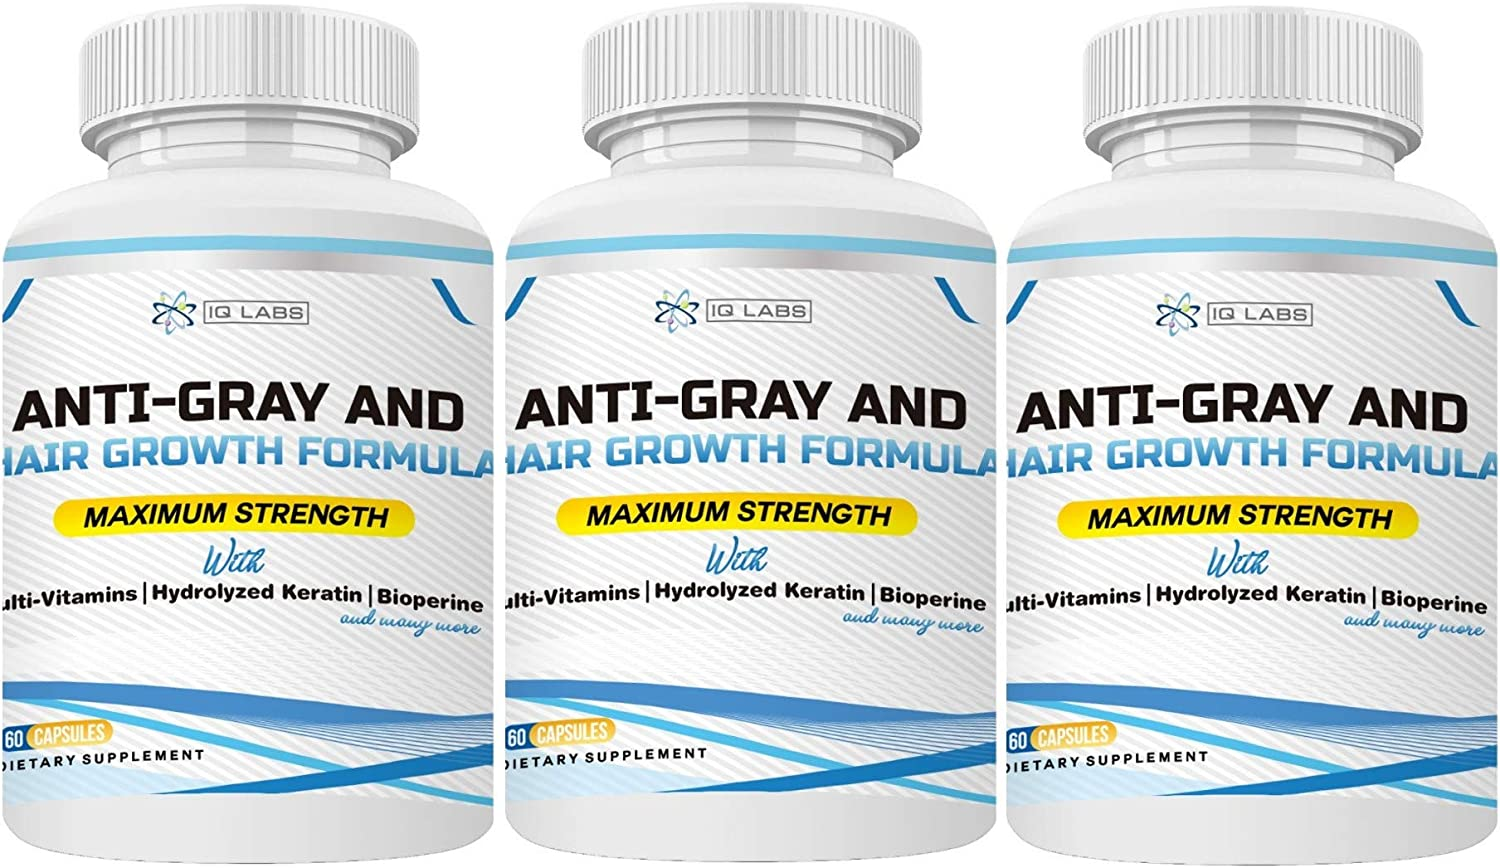 Anti-Gray and Hair Growth Formula | Multivitamin Pills+ Hydrolized Keratin+Biotin+ Bioperine for Breakage & Graying Prevention | Promotes Regrowth for All Hair Types (3-Pack (180 Capsules))